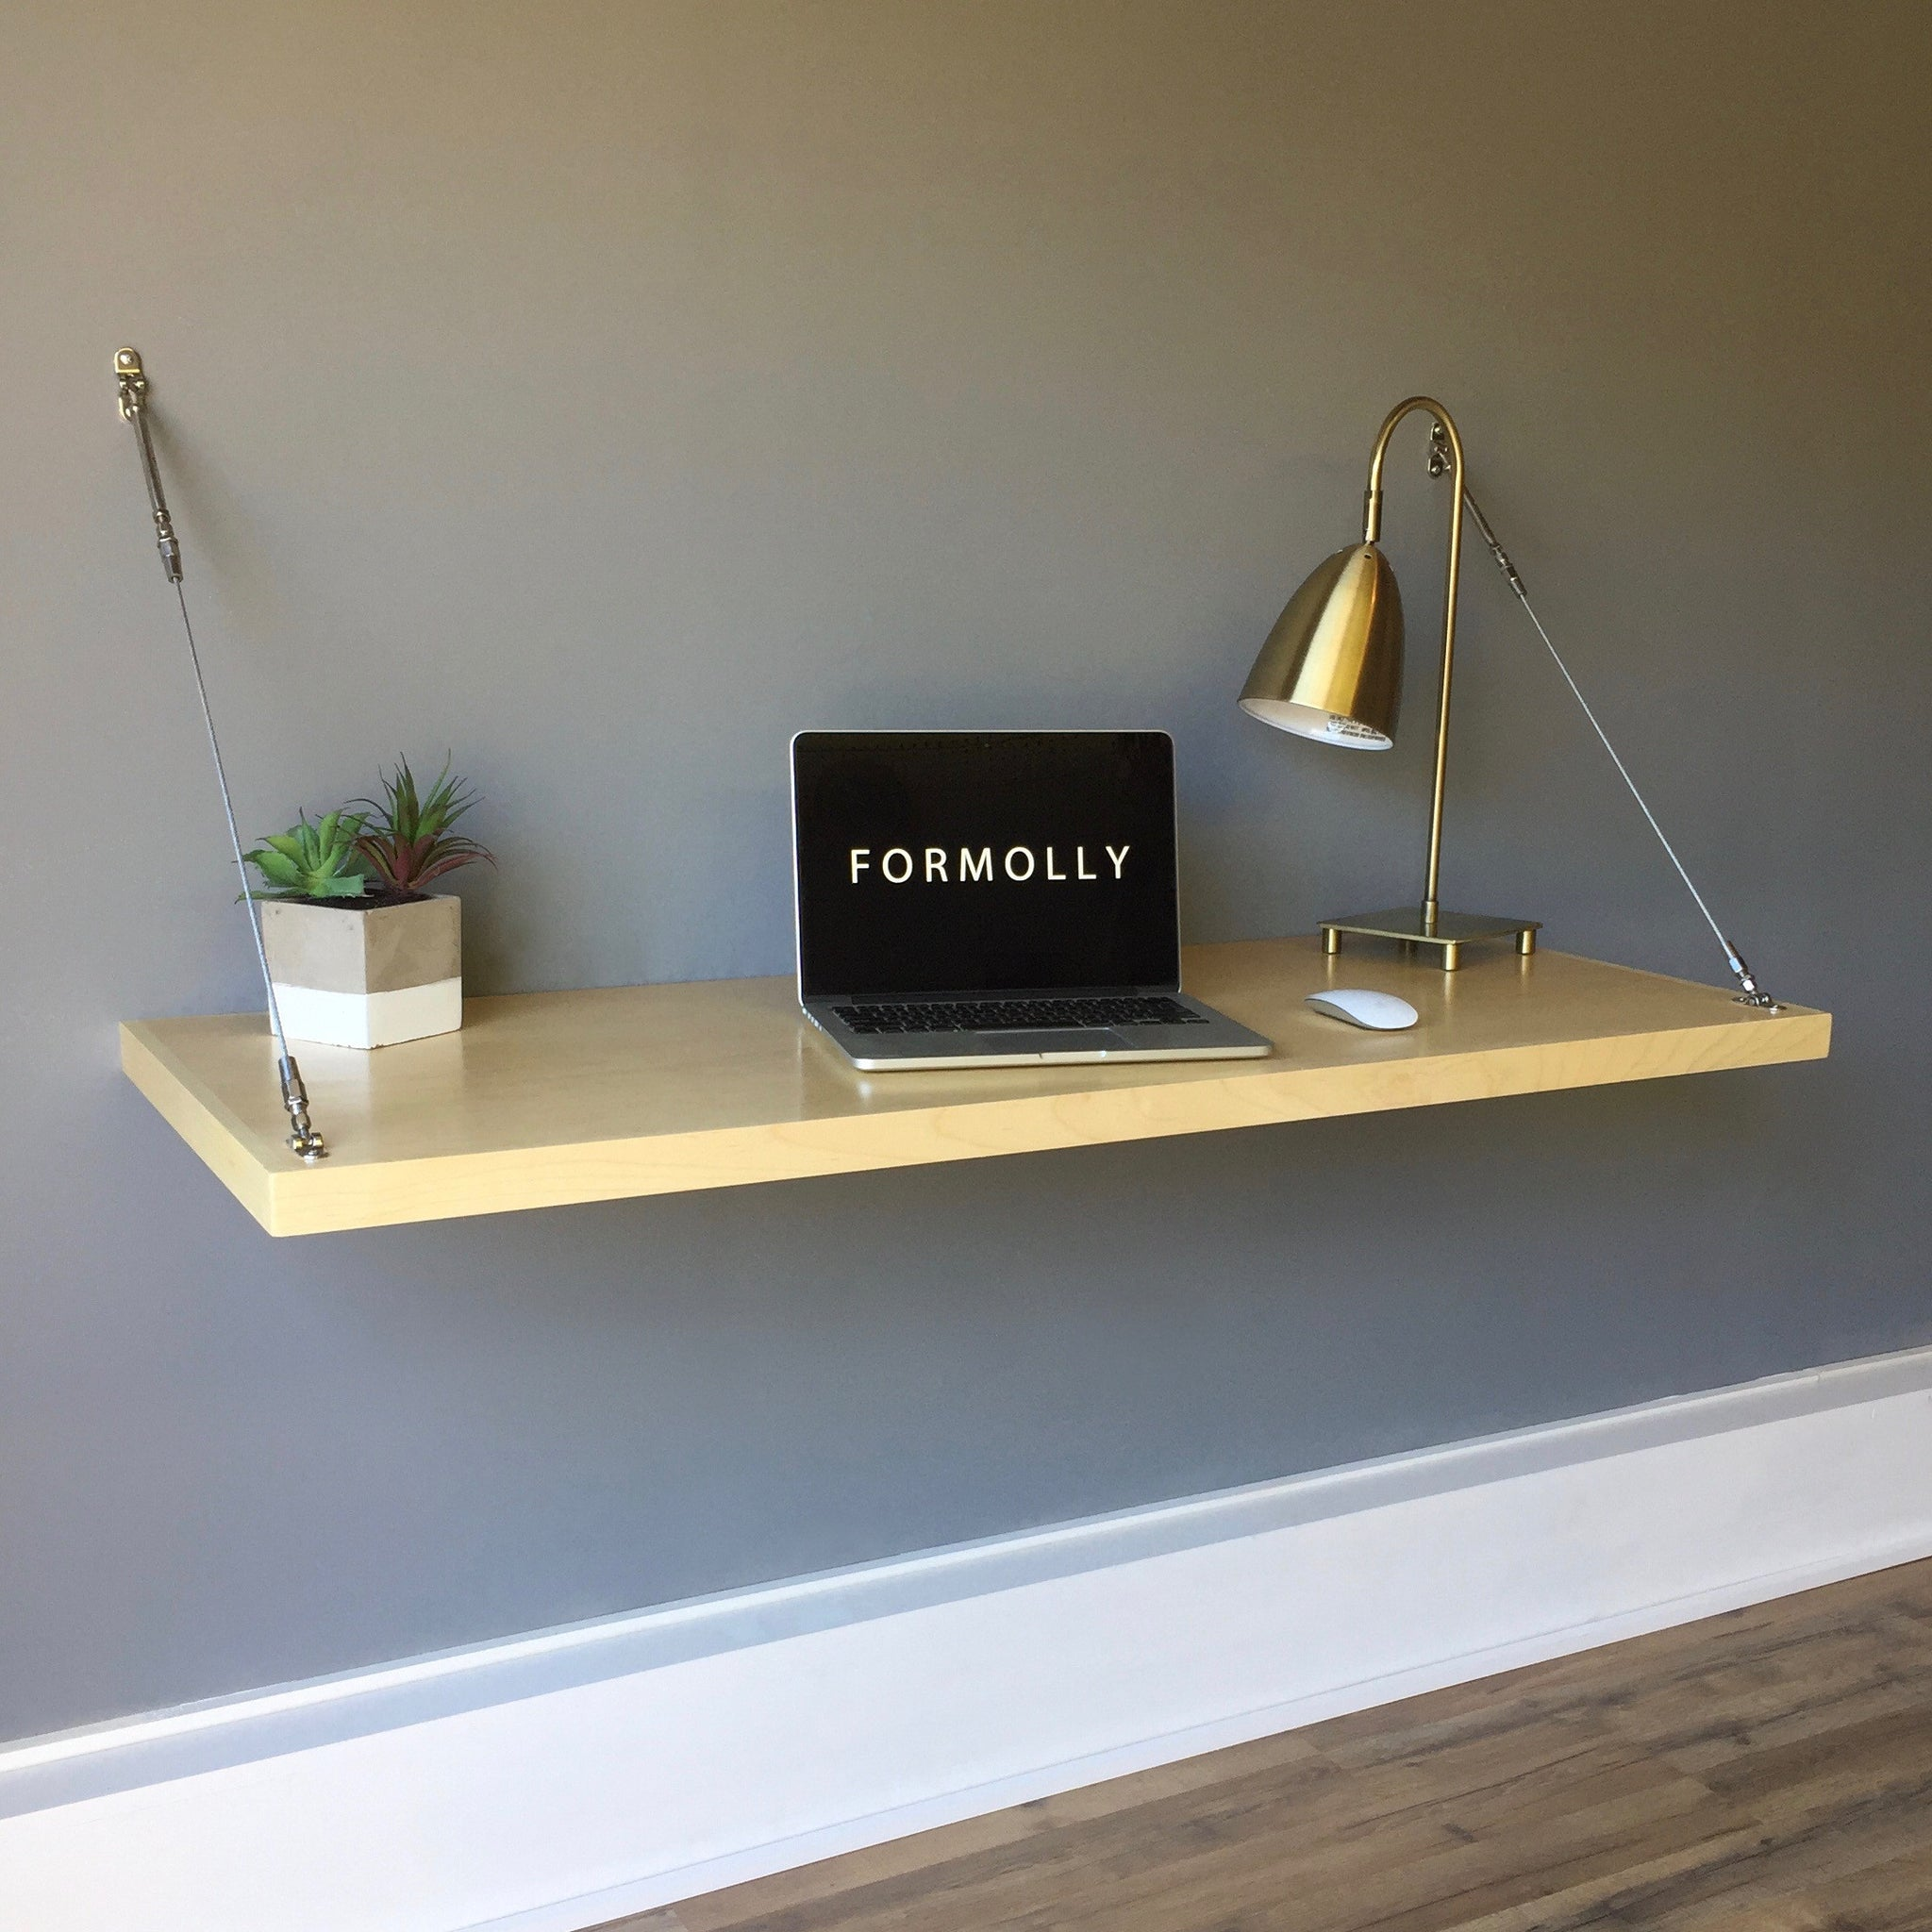 organizer stunning office set ideas black mail zoom glamorous cool decor wall hanging room desk holder home wood supply images mounted awesome pen